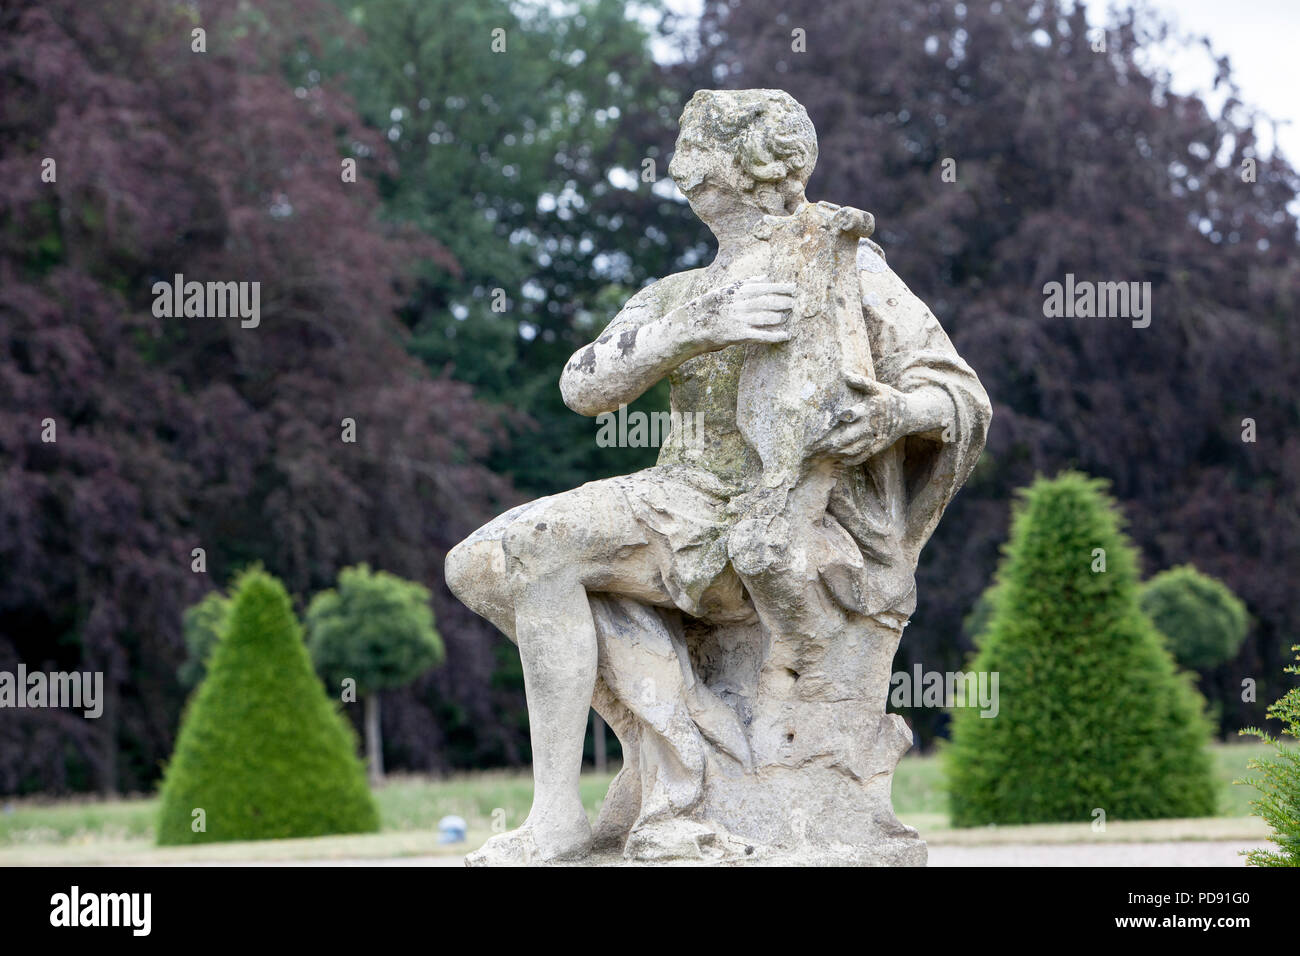 A baroque lyre-player, sculpture at Nordkirchen Moated Palace, Germany - Stock Image